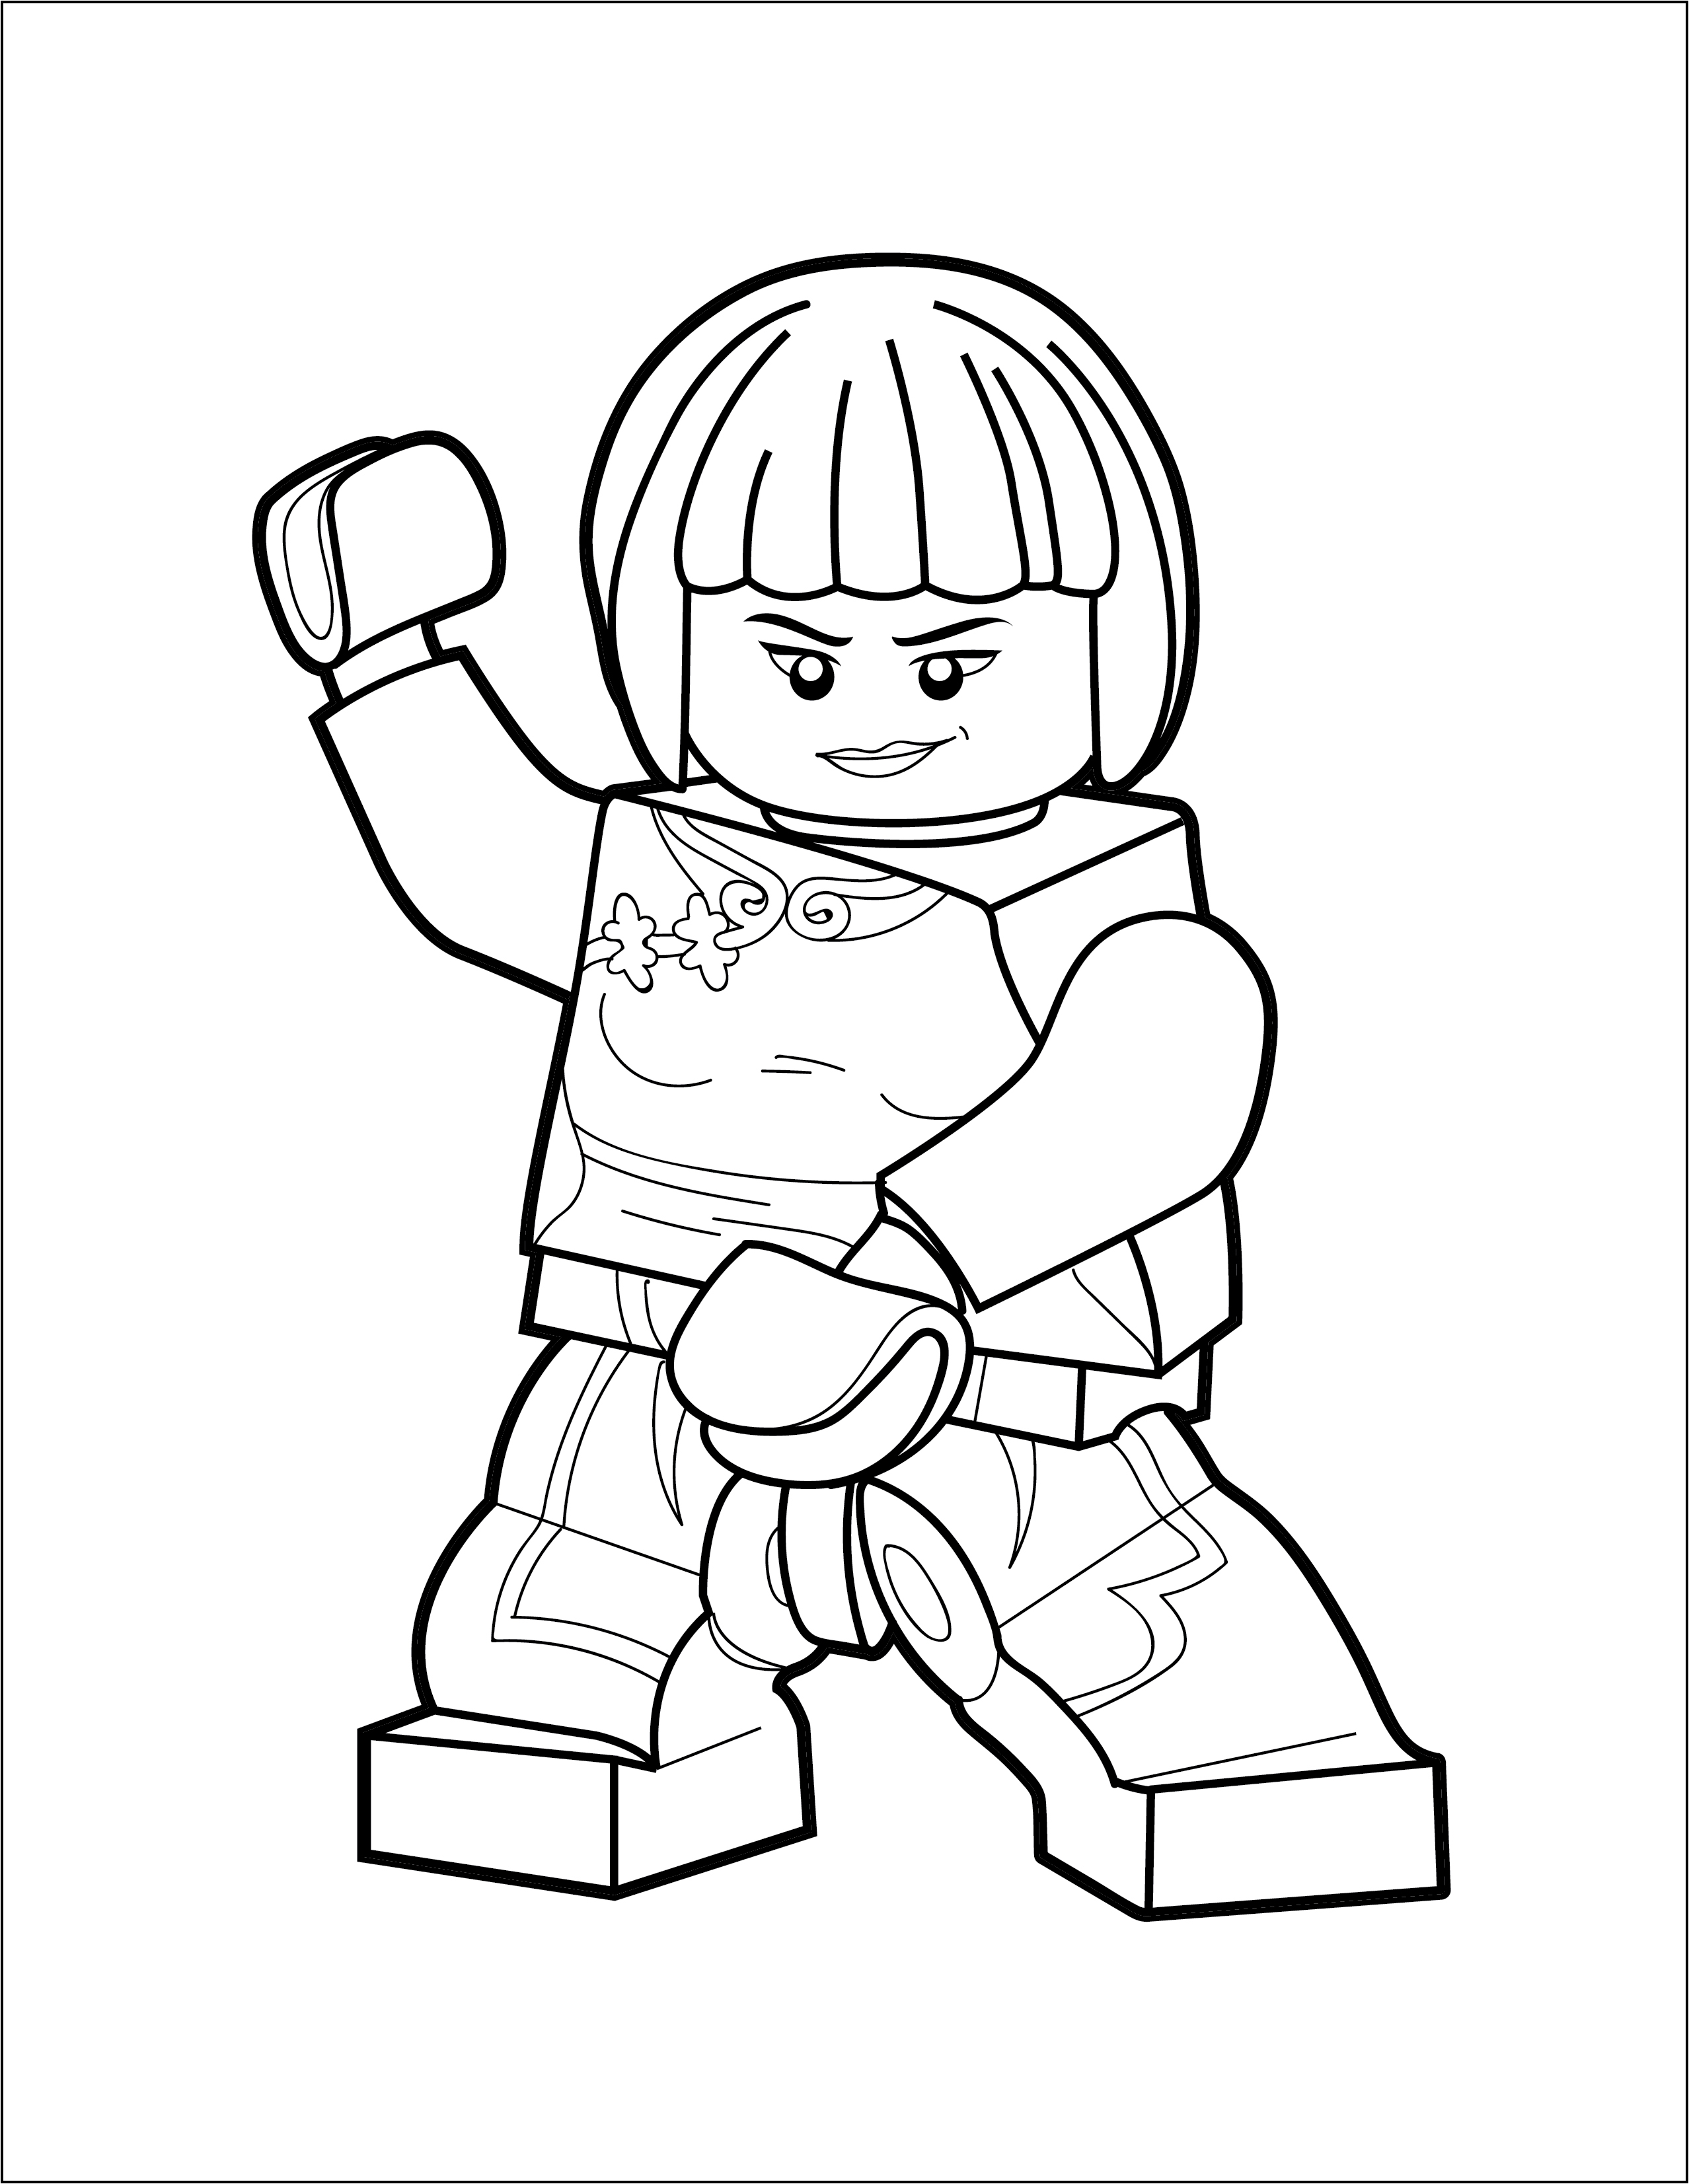 ninjago drawing pictures learn how to draw bytar from ninjago ninjago step by pictures drawing ninjago